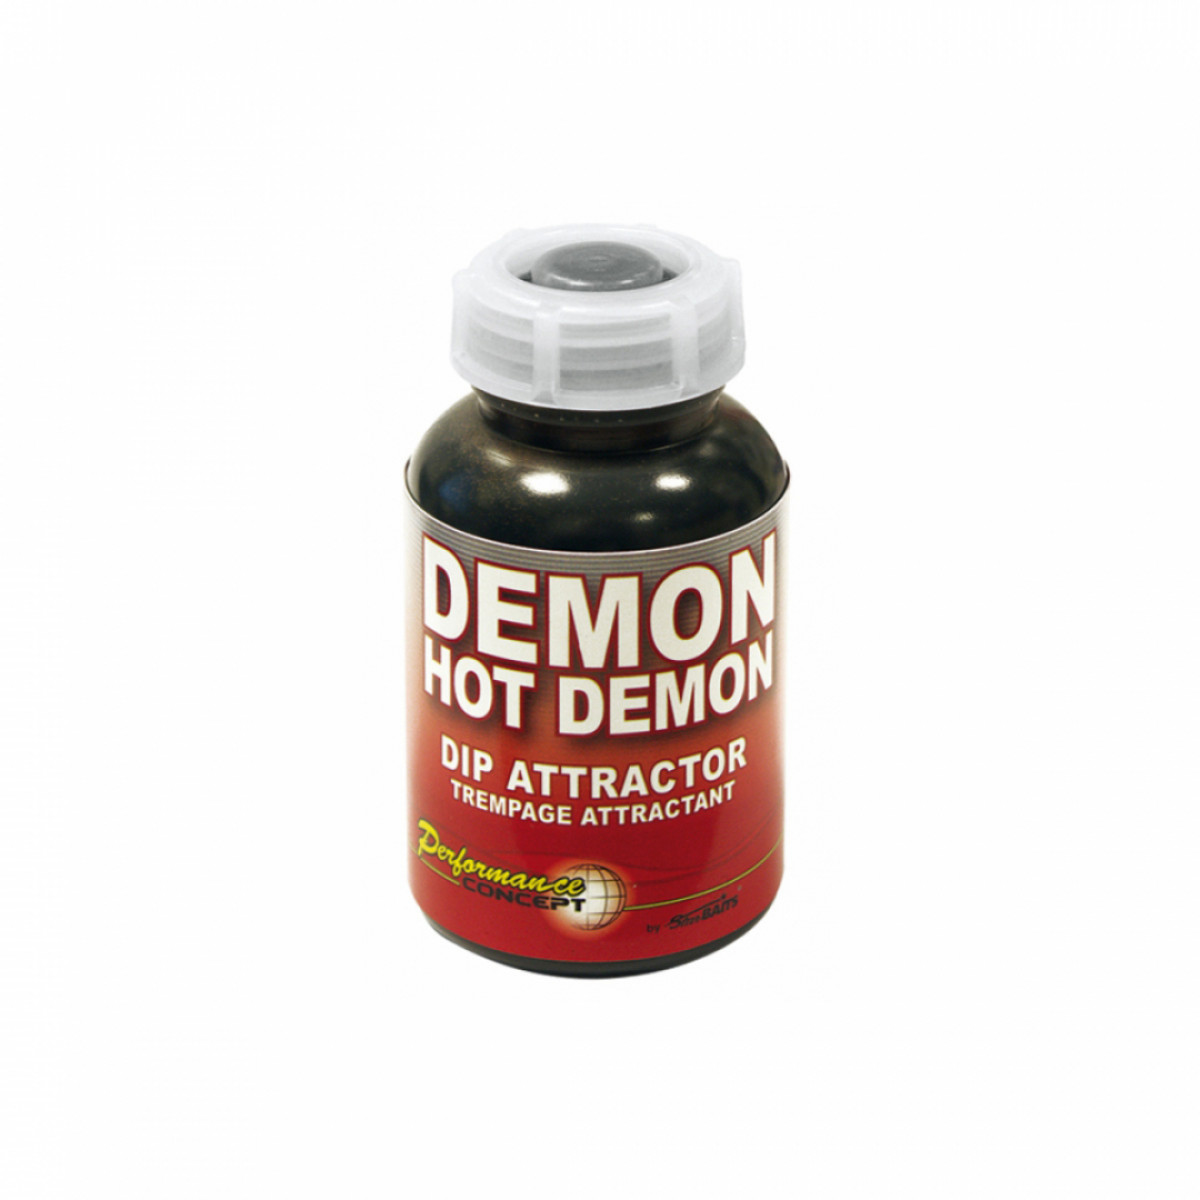 STARBAITS PC DEMON HOT DEMON DIP ATTRACTOR